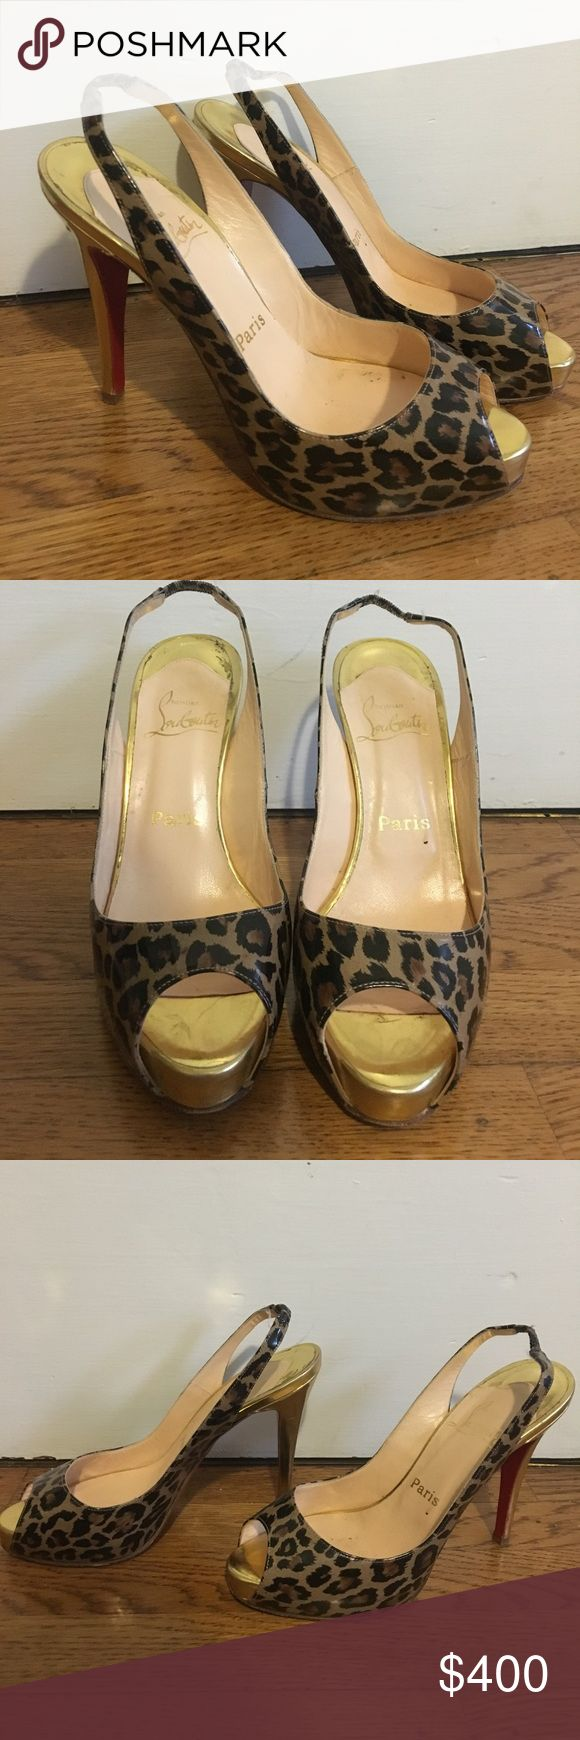 Christian Louboutin pumps Authentic. Cheetah print and gold pumps with approx 4 inch heels. Light wear with small scuffs on back of heels as pictured. Christian Louboutin Shoes Heels